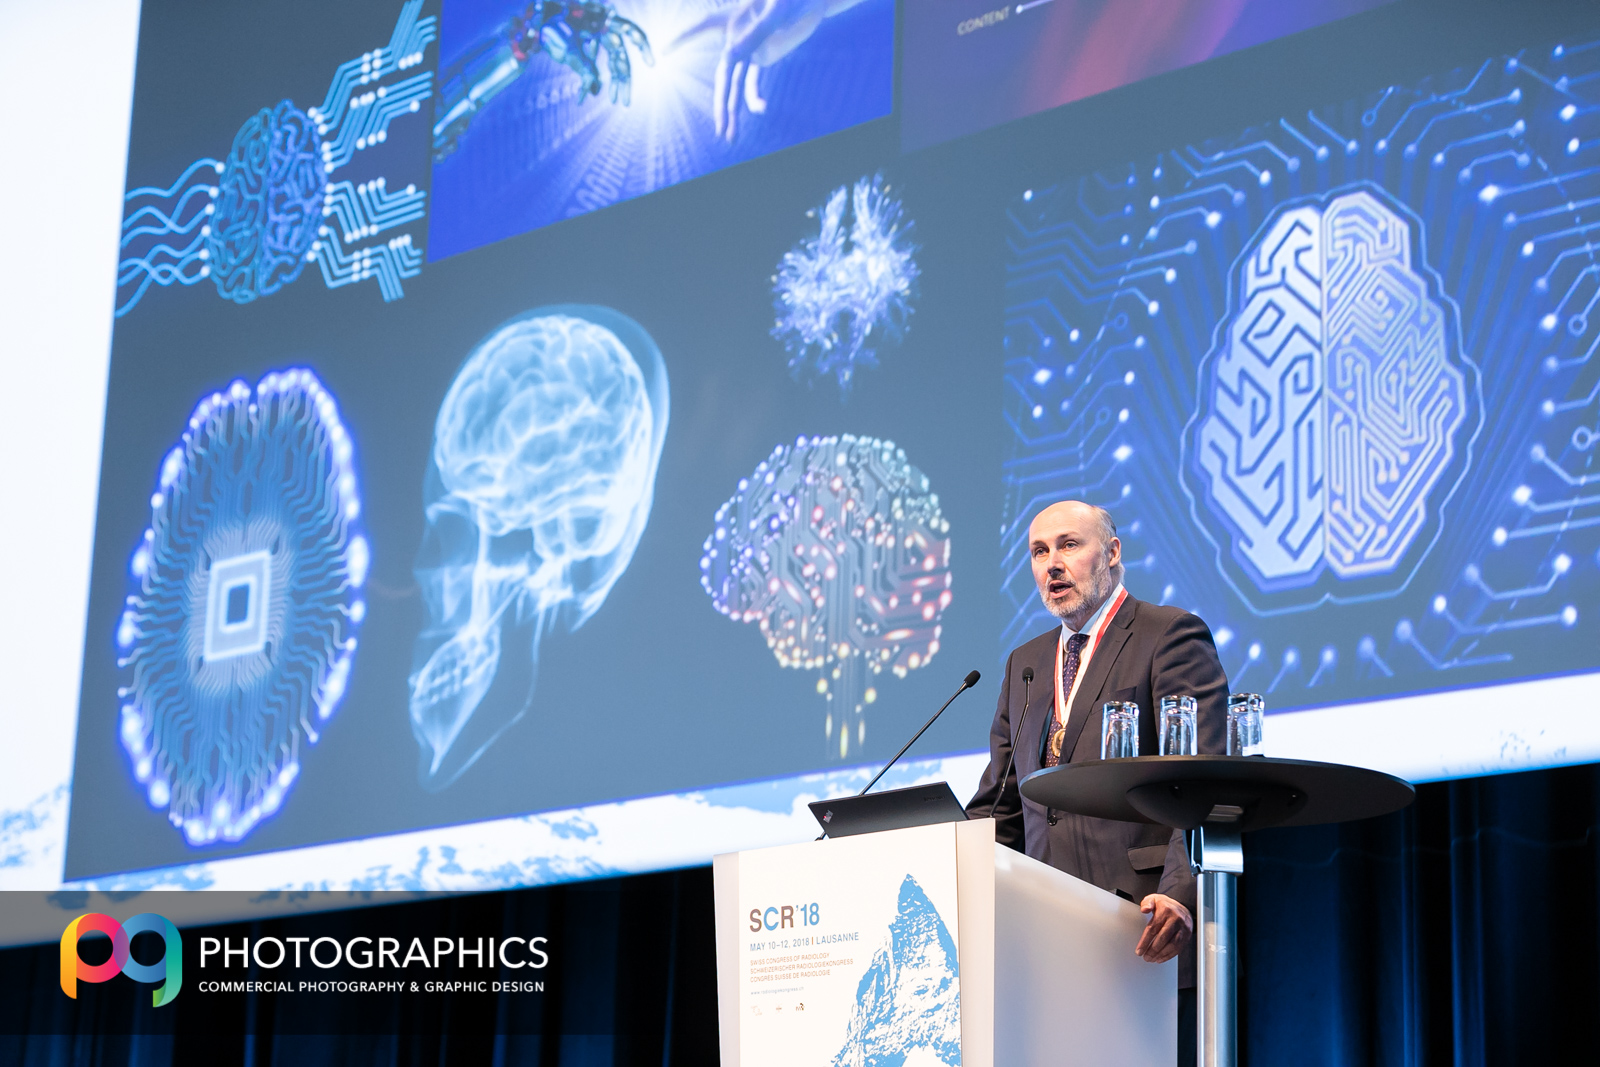 Conference-event-photography-glasgow-edinburgh-Lausanne-31.jpg